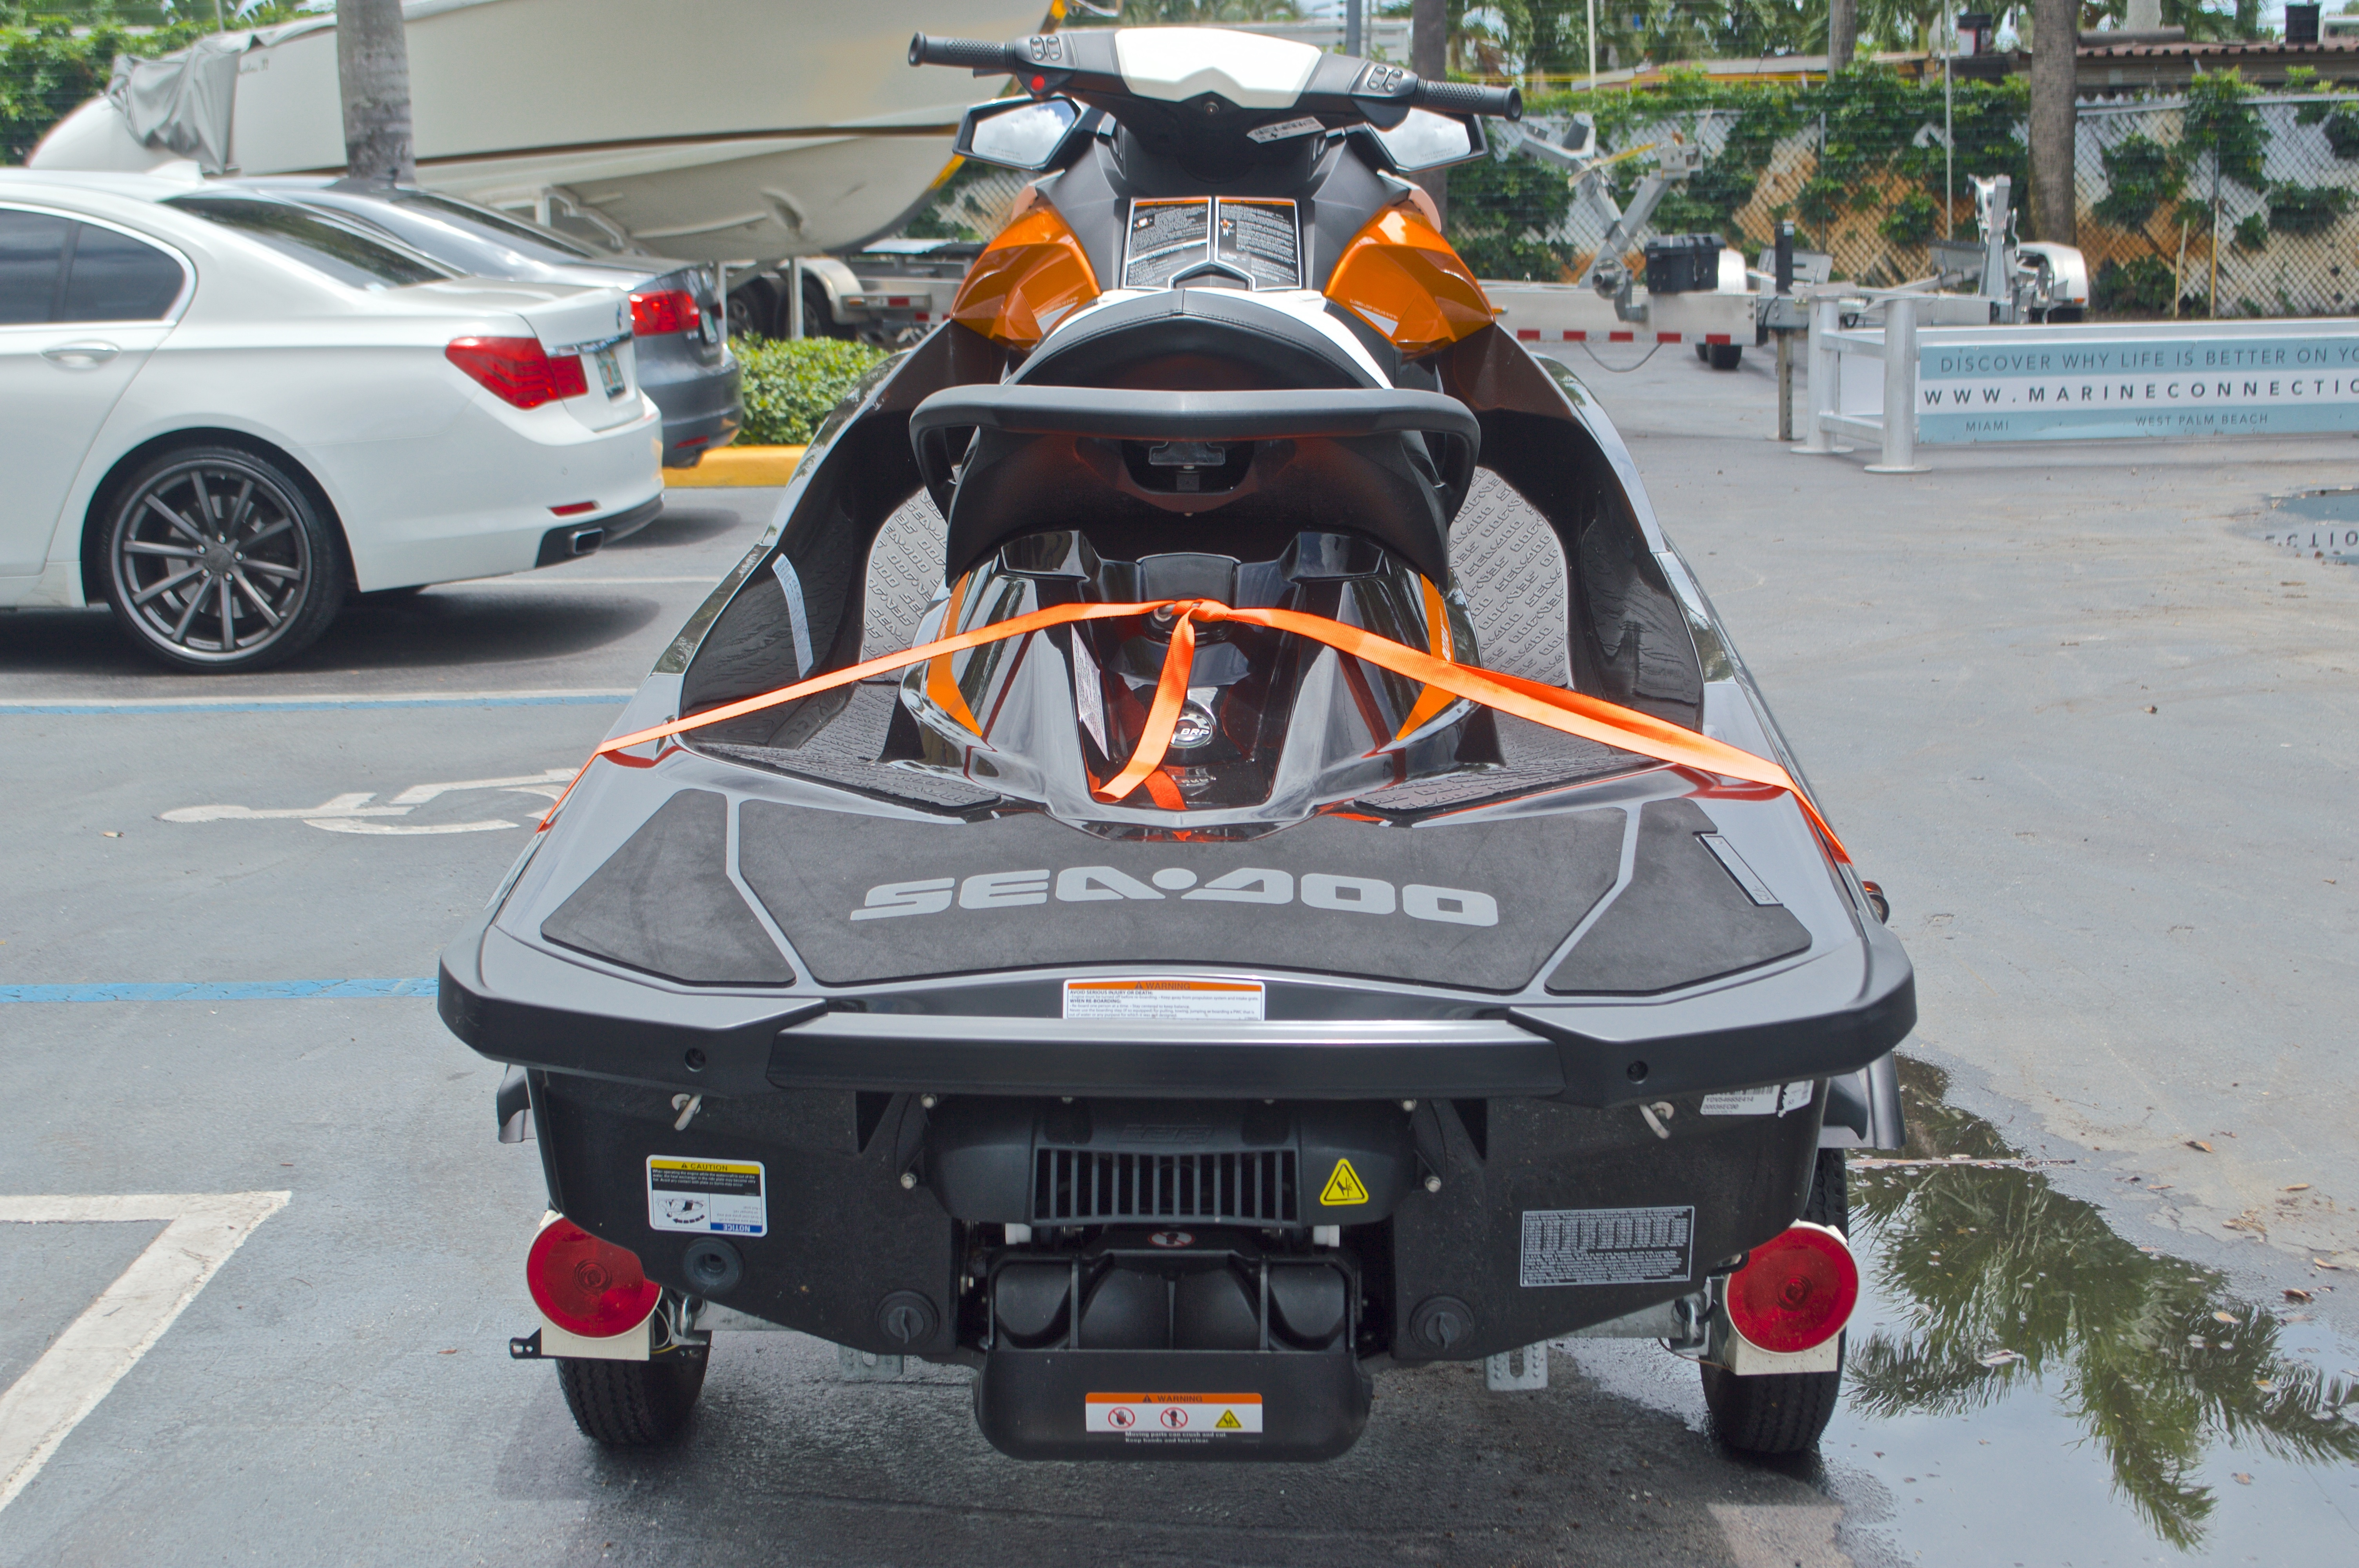 Thumbnail 6 for Used 2014 Sea-Doo GTR 215 boat for sale in West Palm Beach, FL